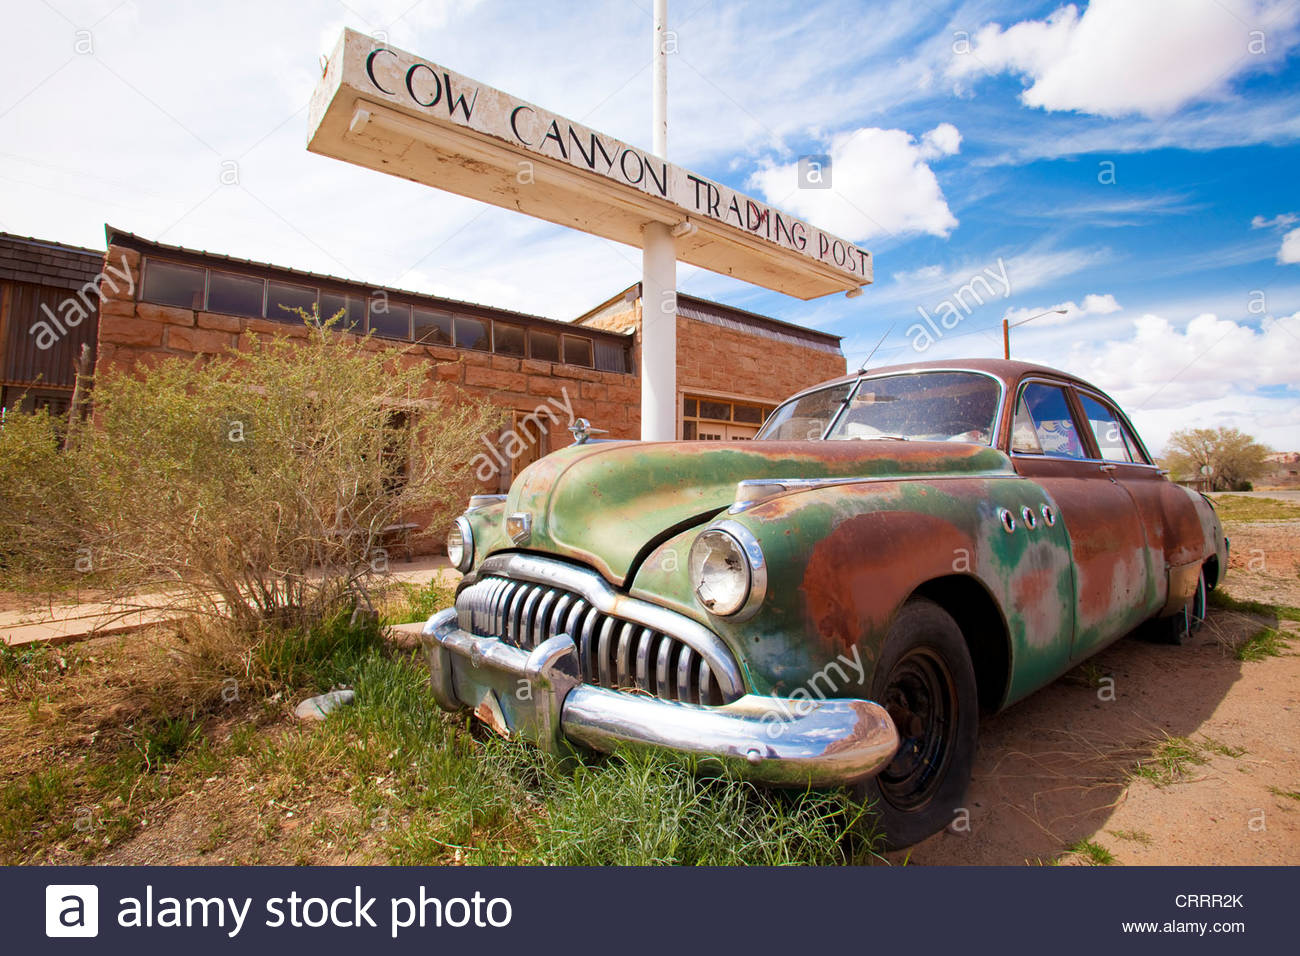 Cow Canyon Trading Post and Restaurant, Bluff, Utah. [Active trading post and gourmet restaurant in the town of - Stock Image